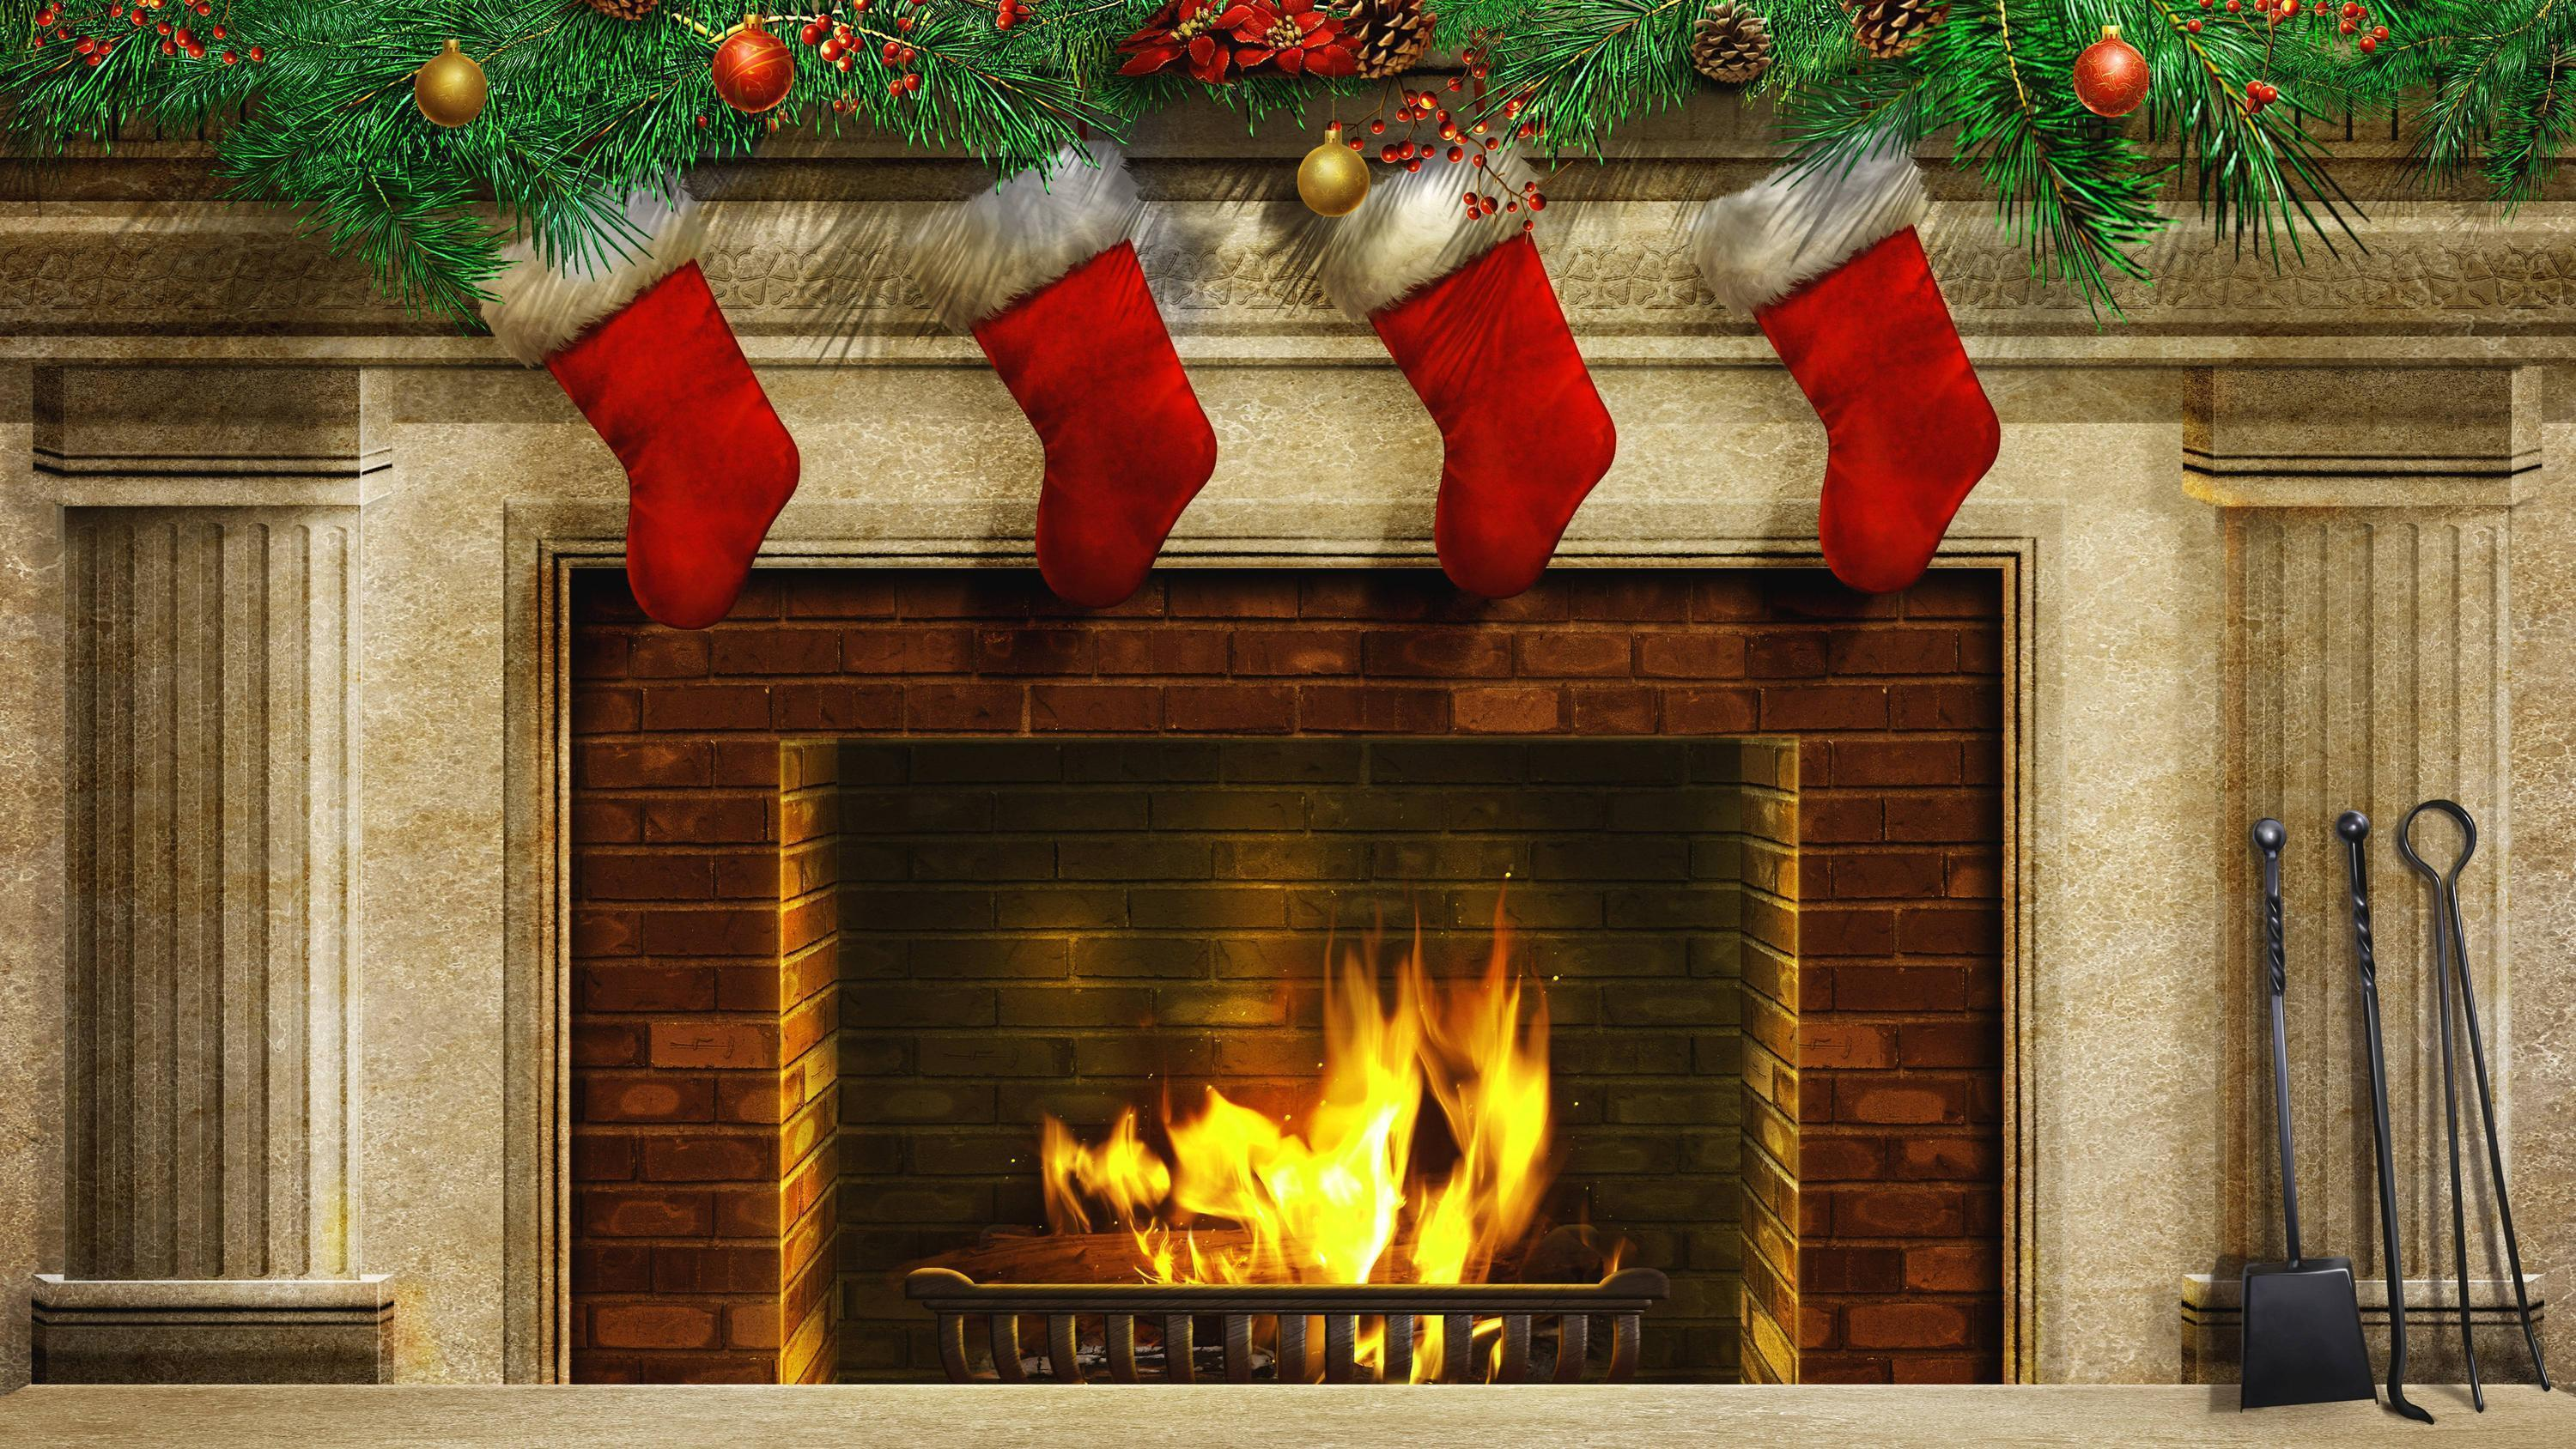 Christmas Fireplace and Christmas Stockings Backgrounds